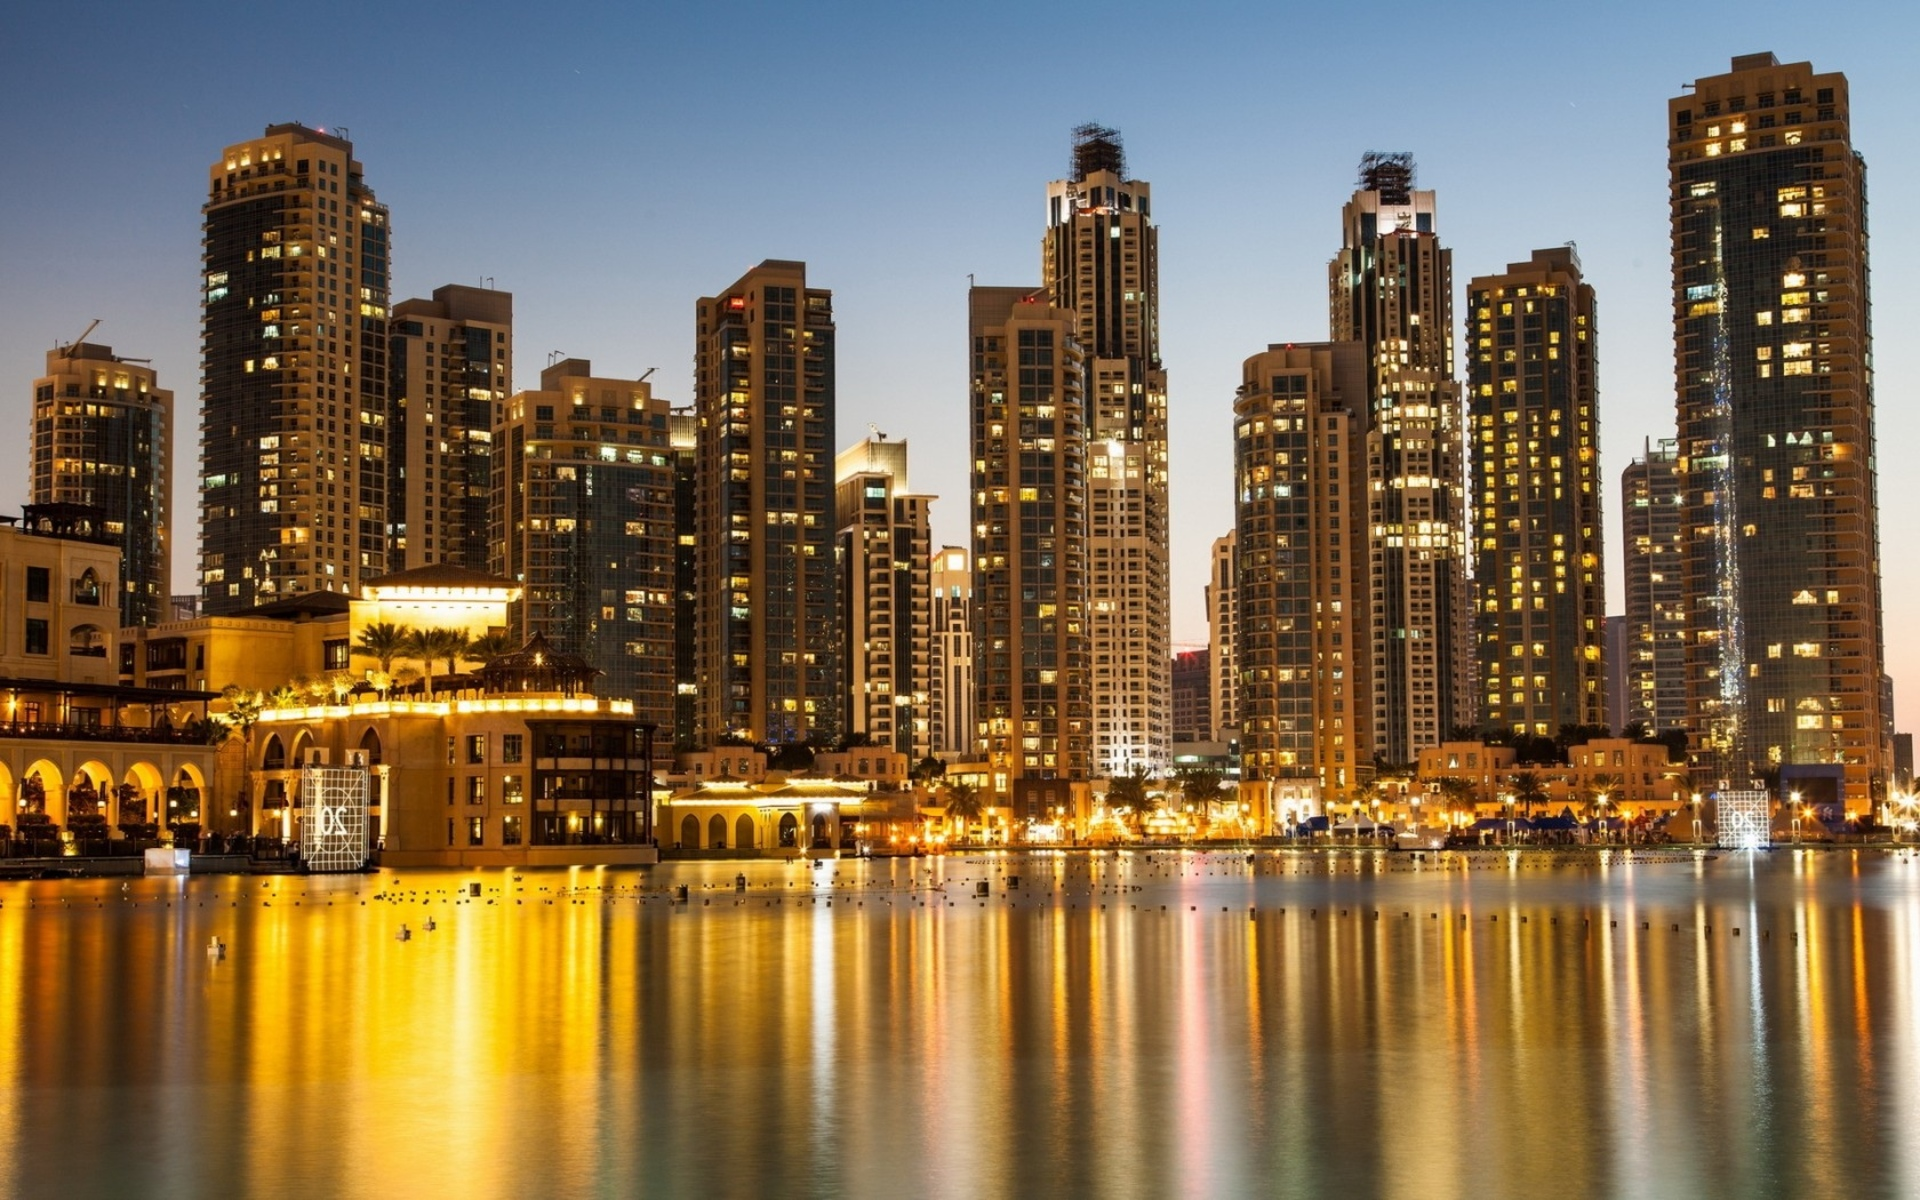 dubai full hd wallpaper and background image | 1920x1200 | id:365420